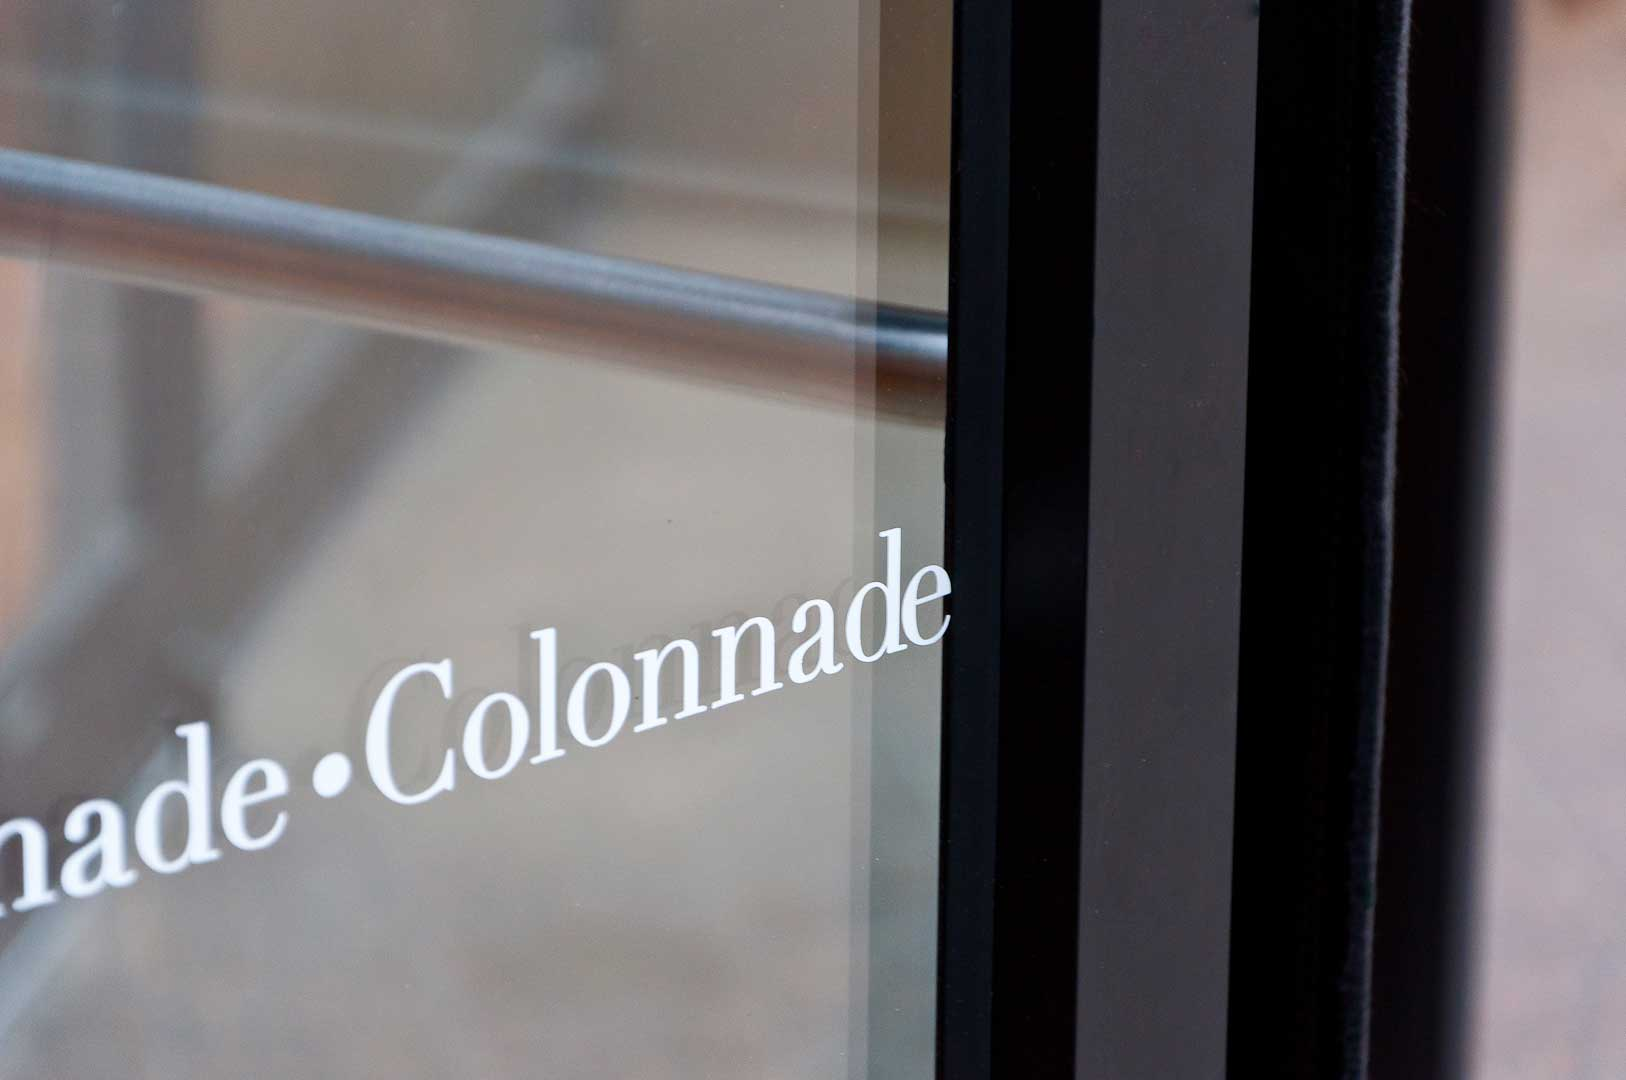 Tight Shot of Colonnade Revolving Door Weather Stripping Installed by Explore1.ca